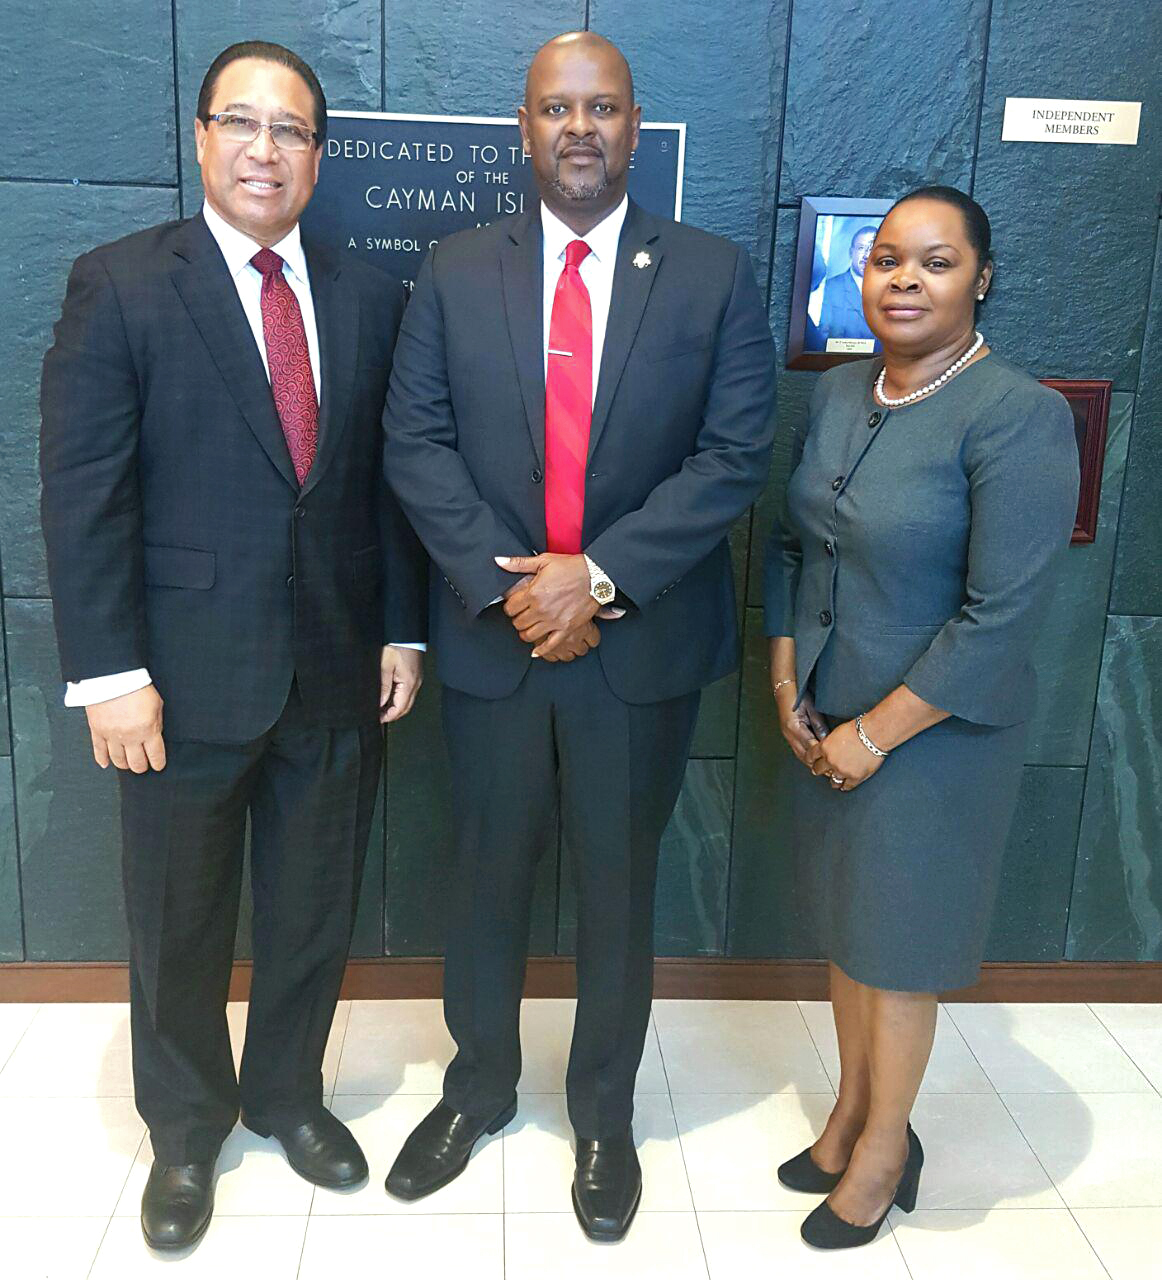 Senior officials from the Turks and Caicos Islands visited the Cayman Islands to discuss immigration services and border security.